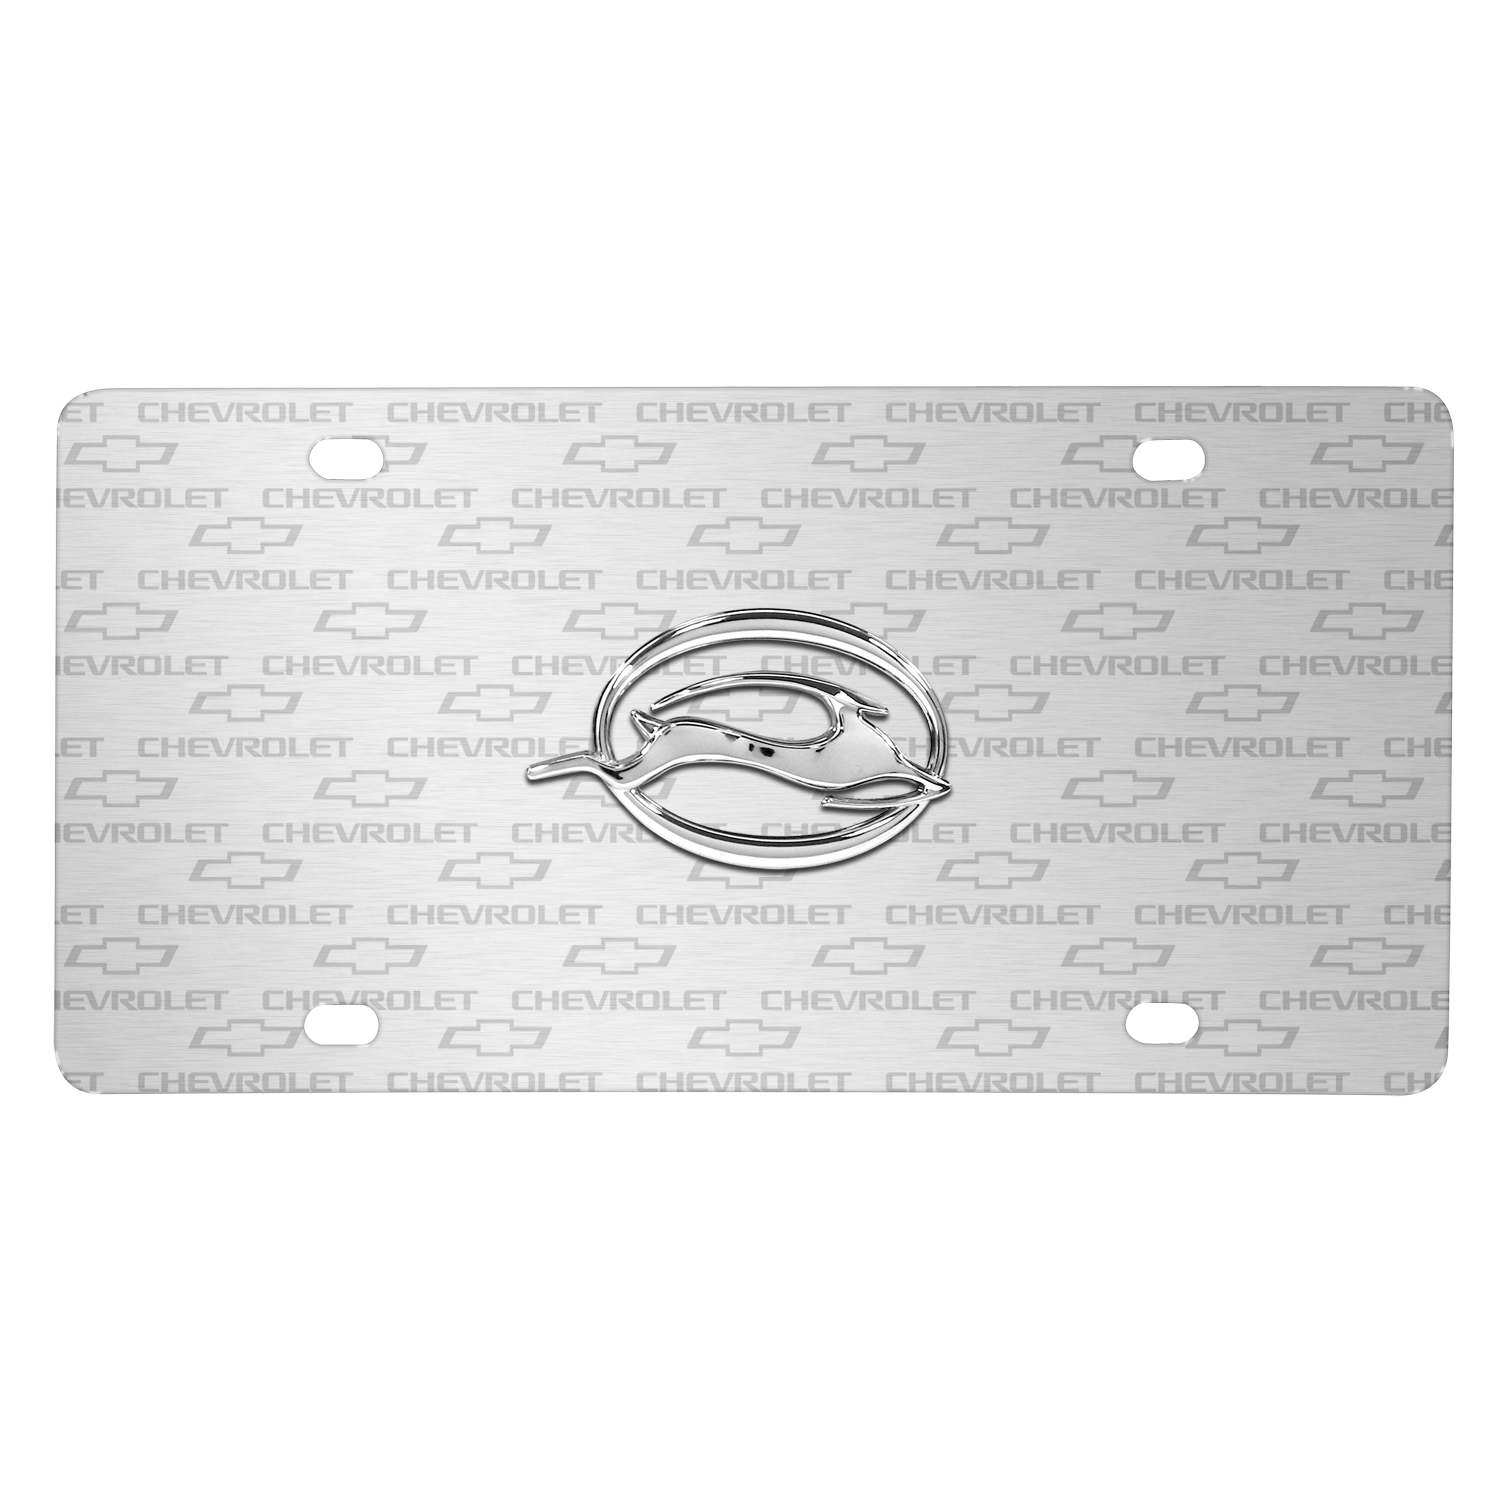 Chevrolet Impala in 3D Logo on Logo Pattern Brushed Aluminum License Plate